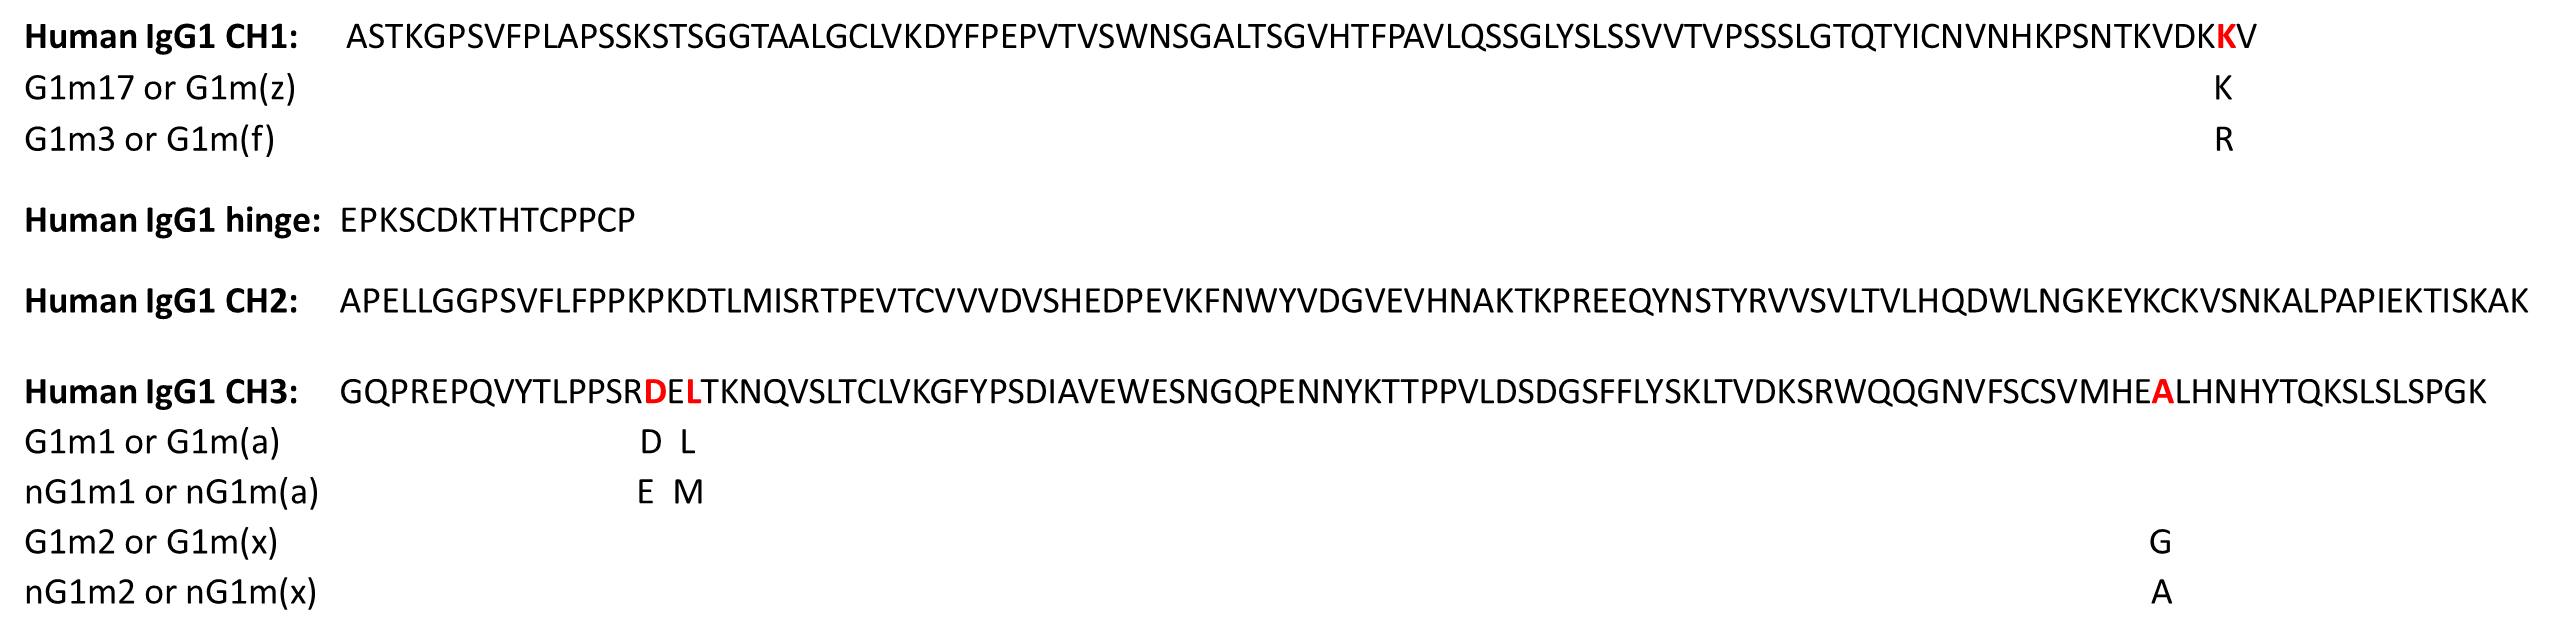 Allotype image